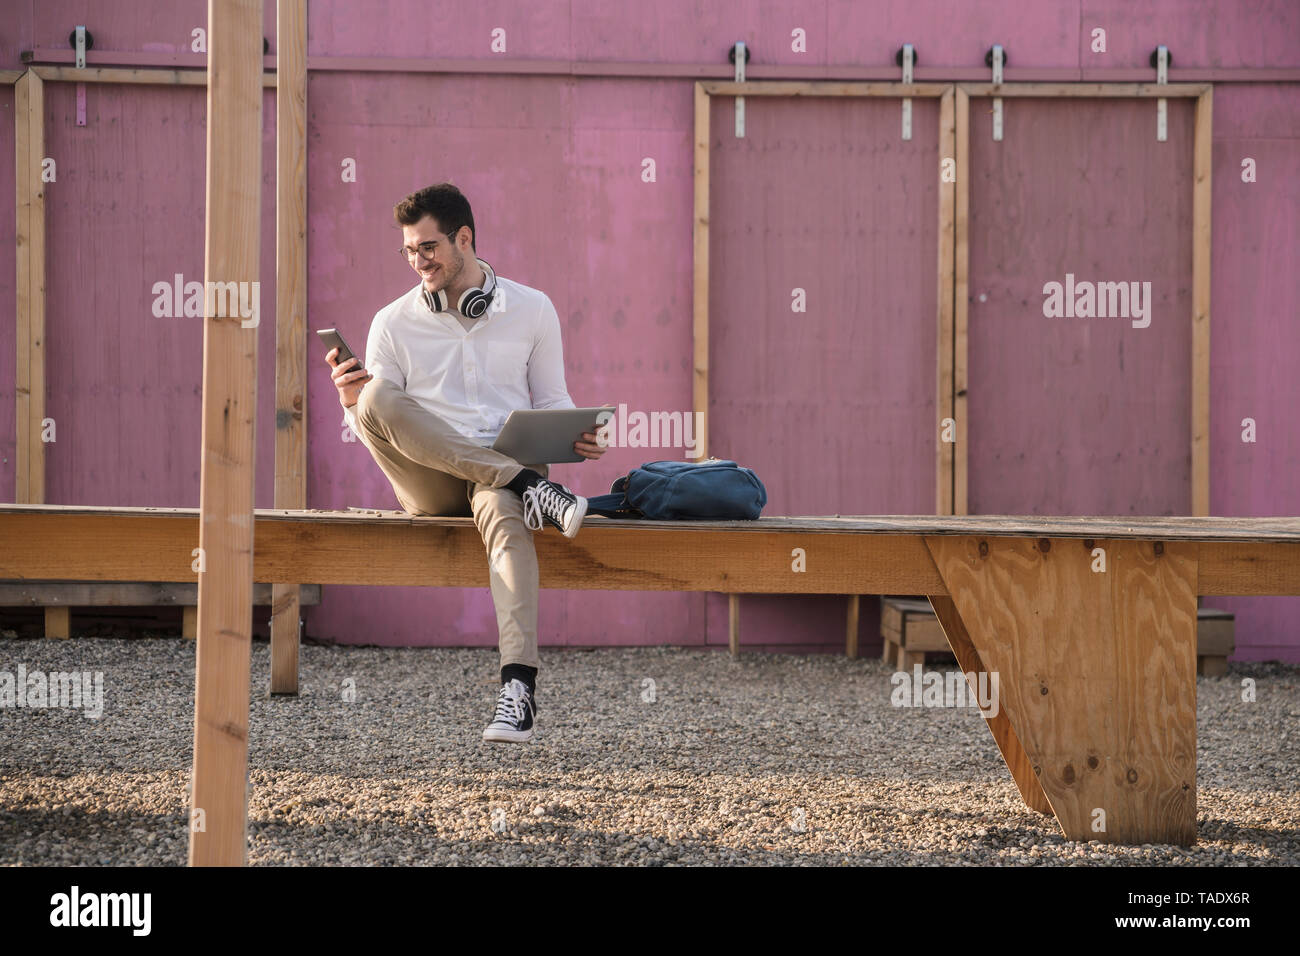 Smiling young man sitting on platform using cell phone - Stock Image